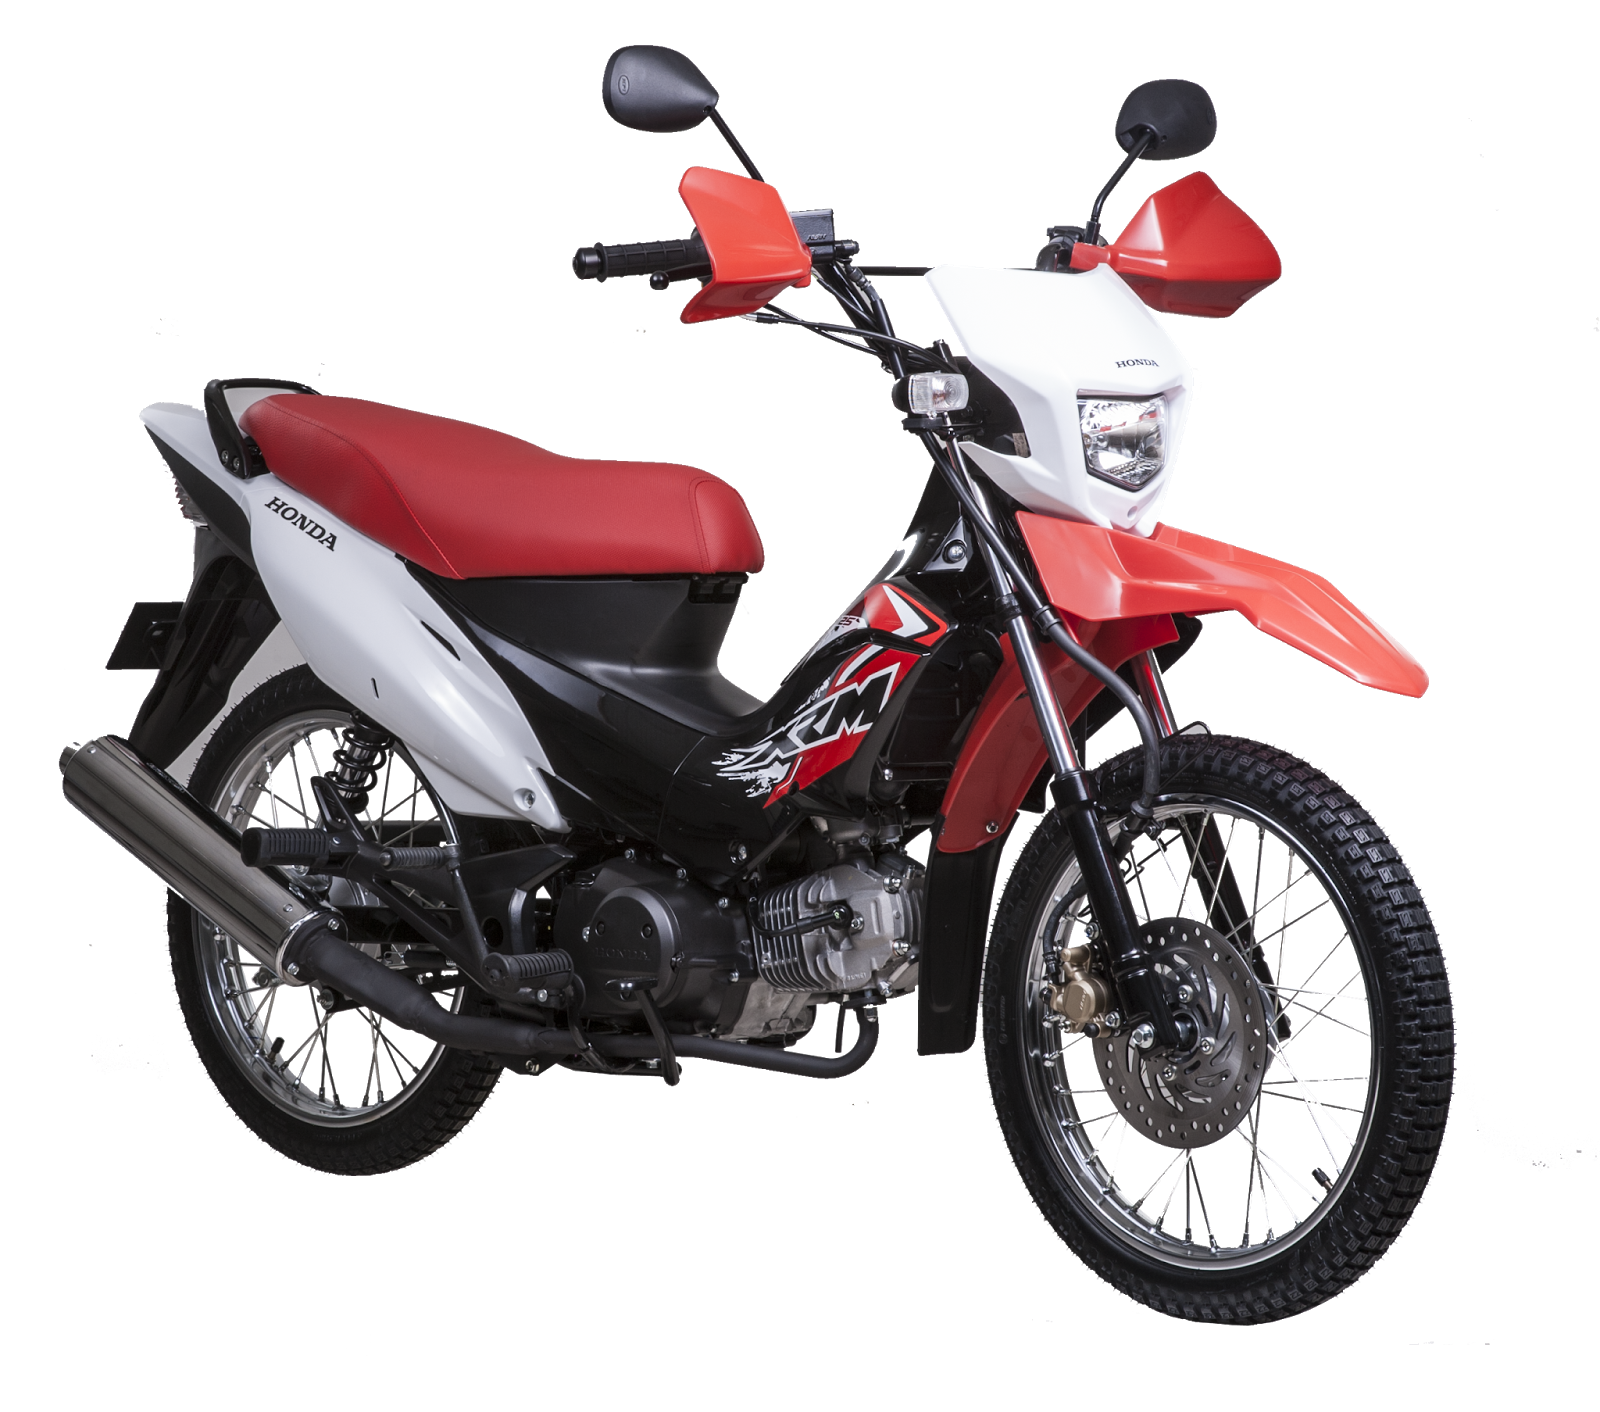 honda xrm 125 motard wiring diagram duo therm rv air conditioner launches the latest bikes in davao city